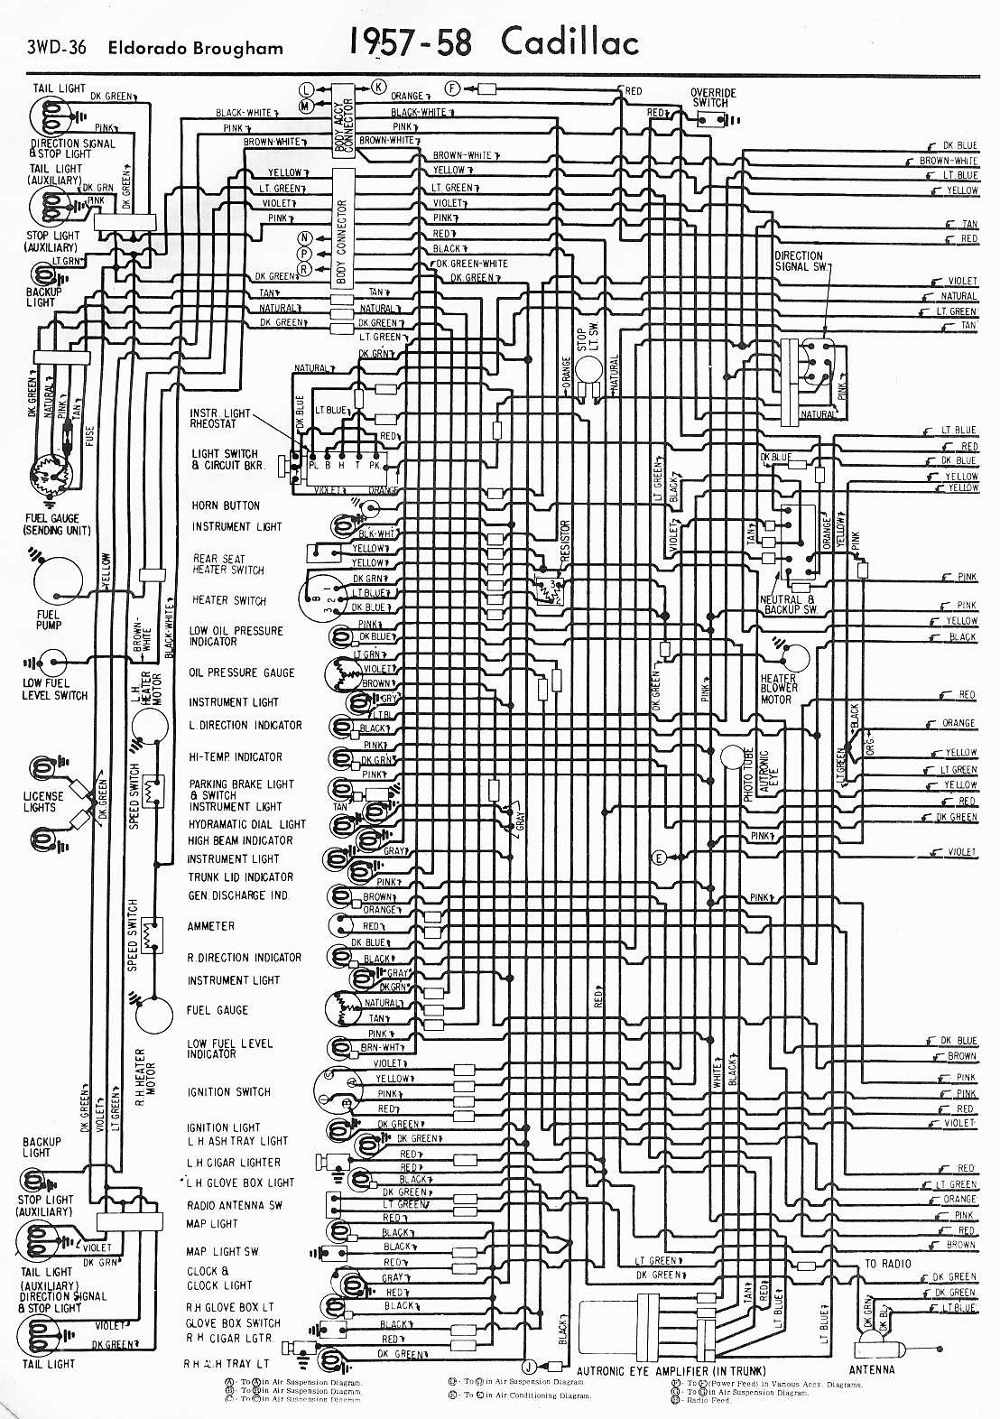 92 Cadillac Deville Wiring Diagrams List HD Quality Wiring Diagram  source.mindfulness-protocol.frmindfulness-protocol.fr